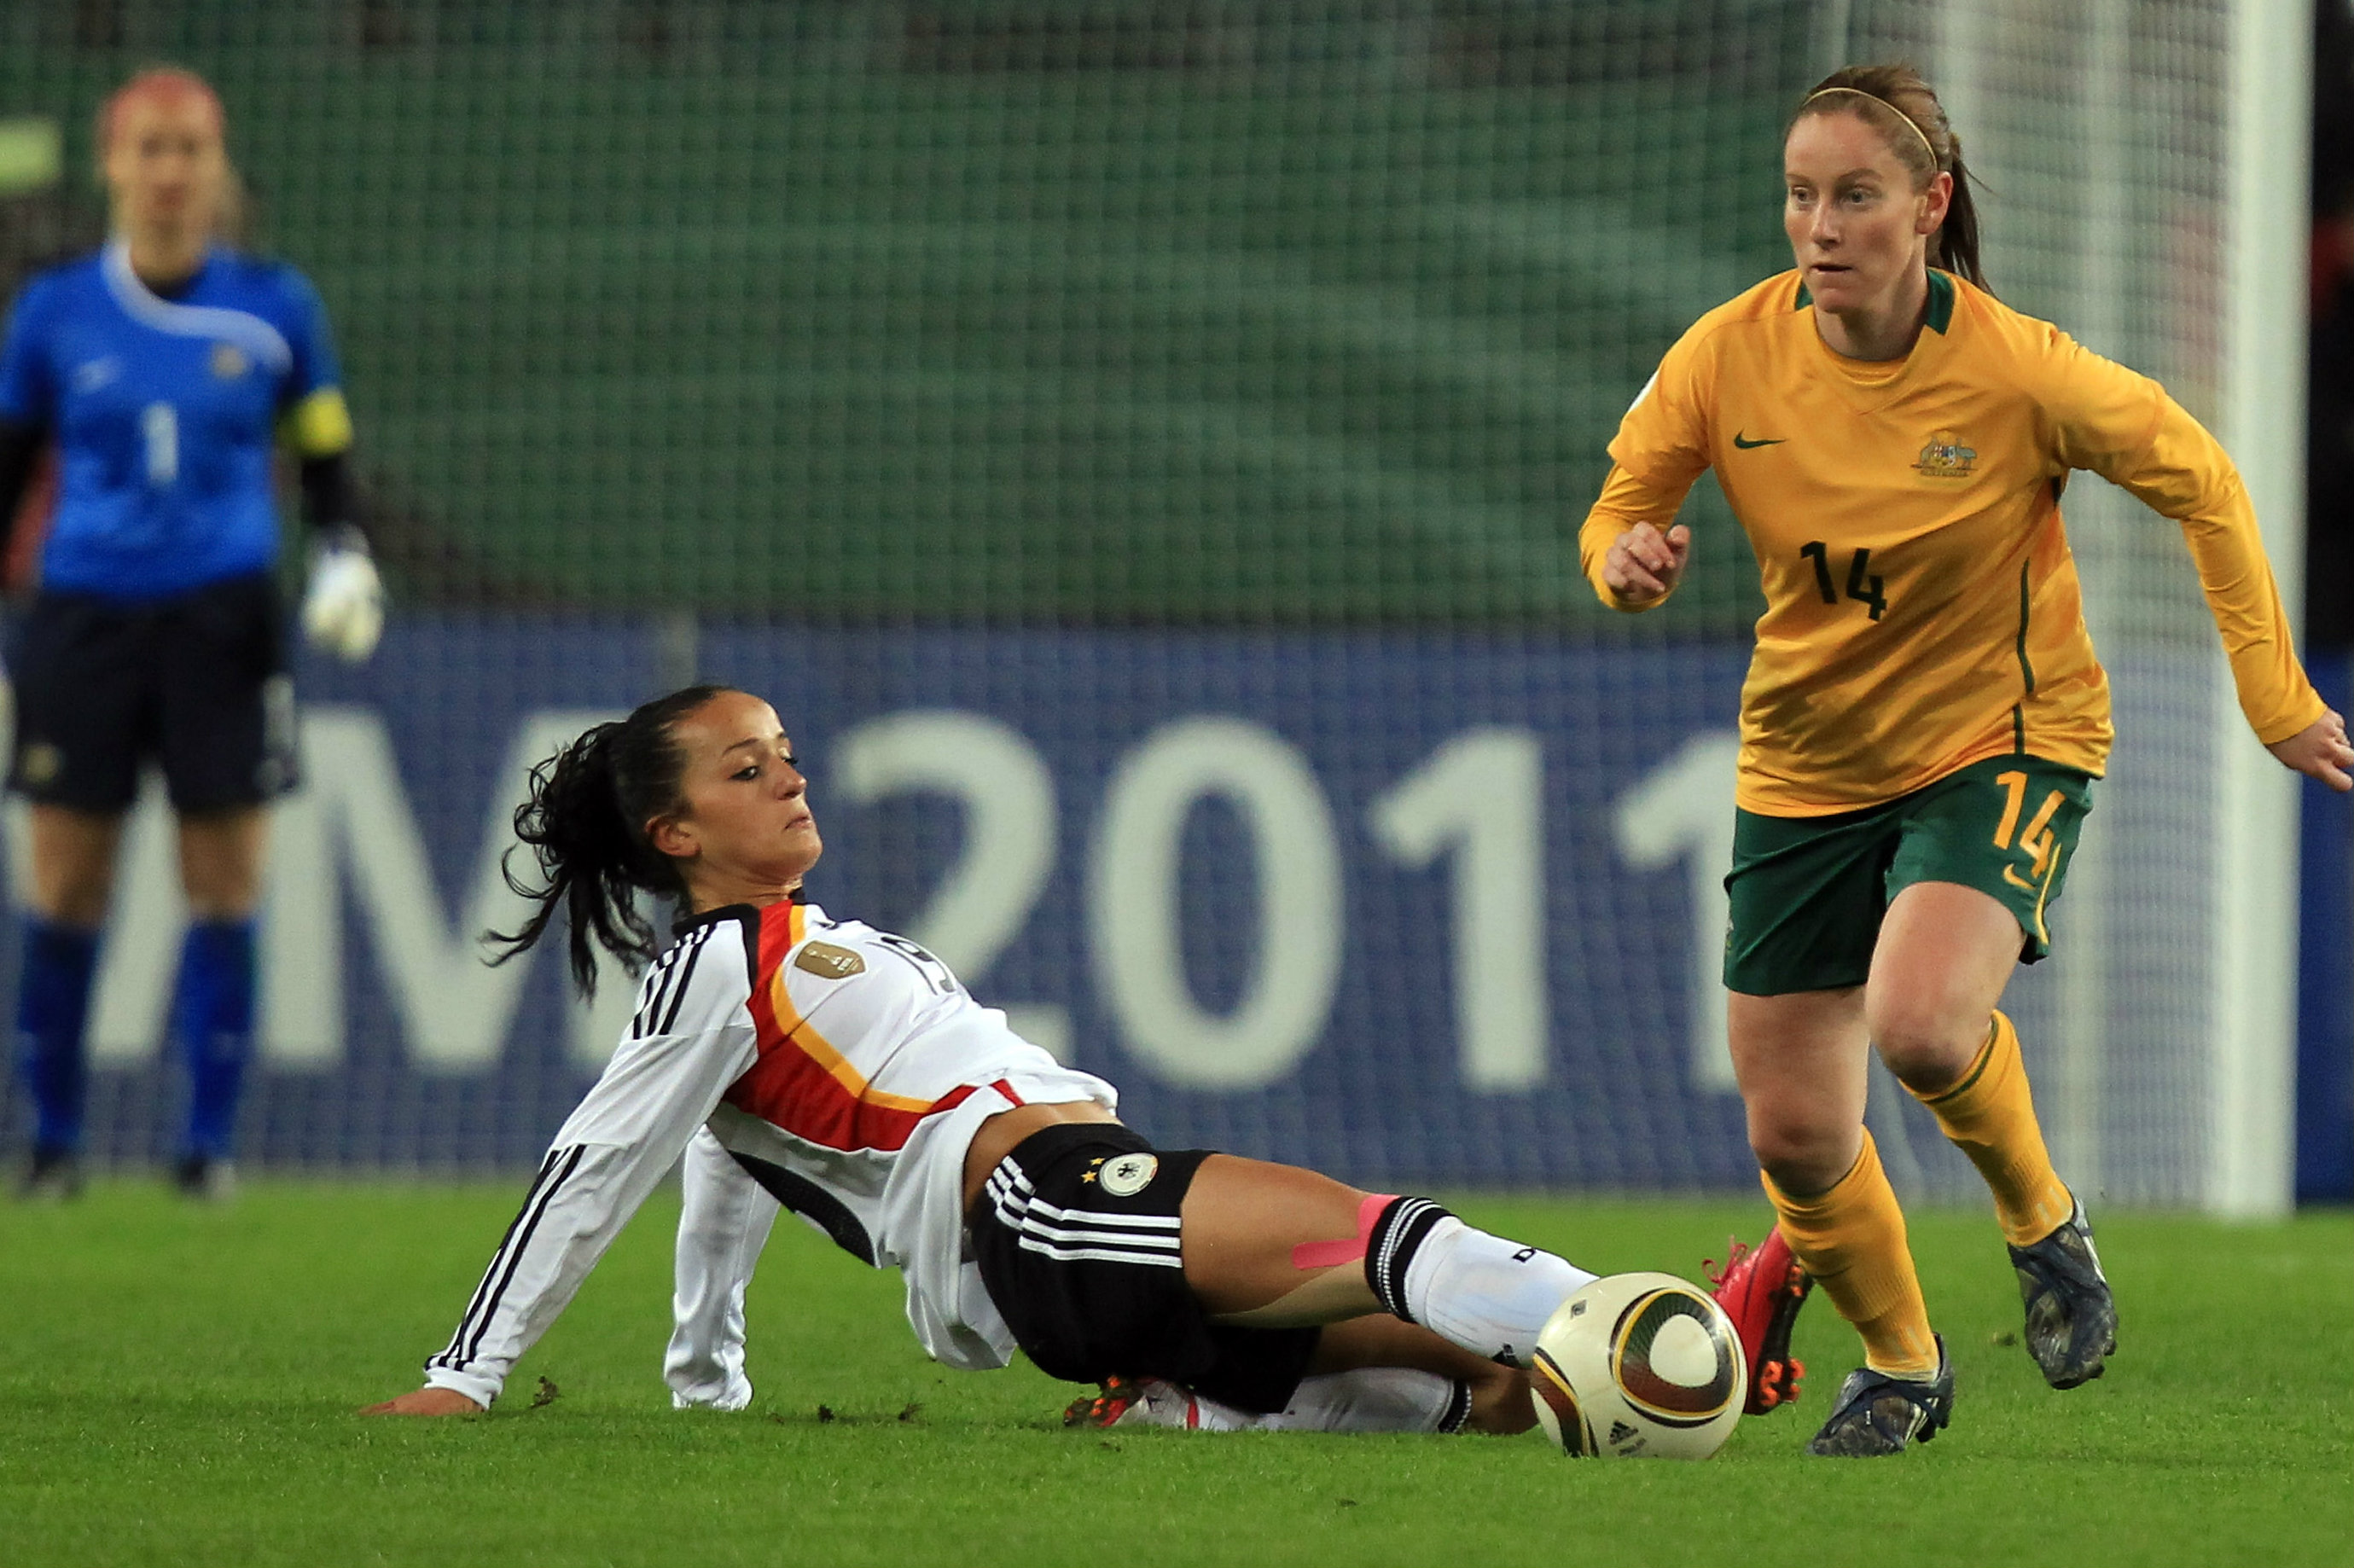 Collette McCallum helped set the current standard for the Westfield Matildas